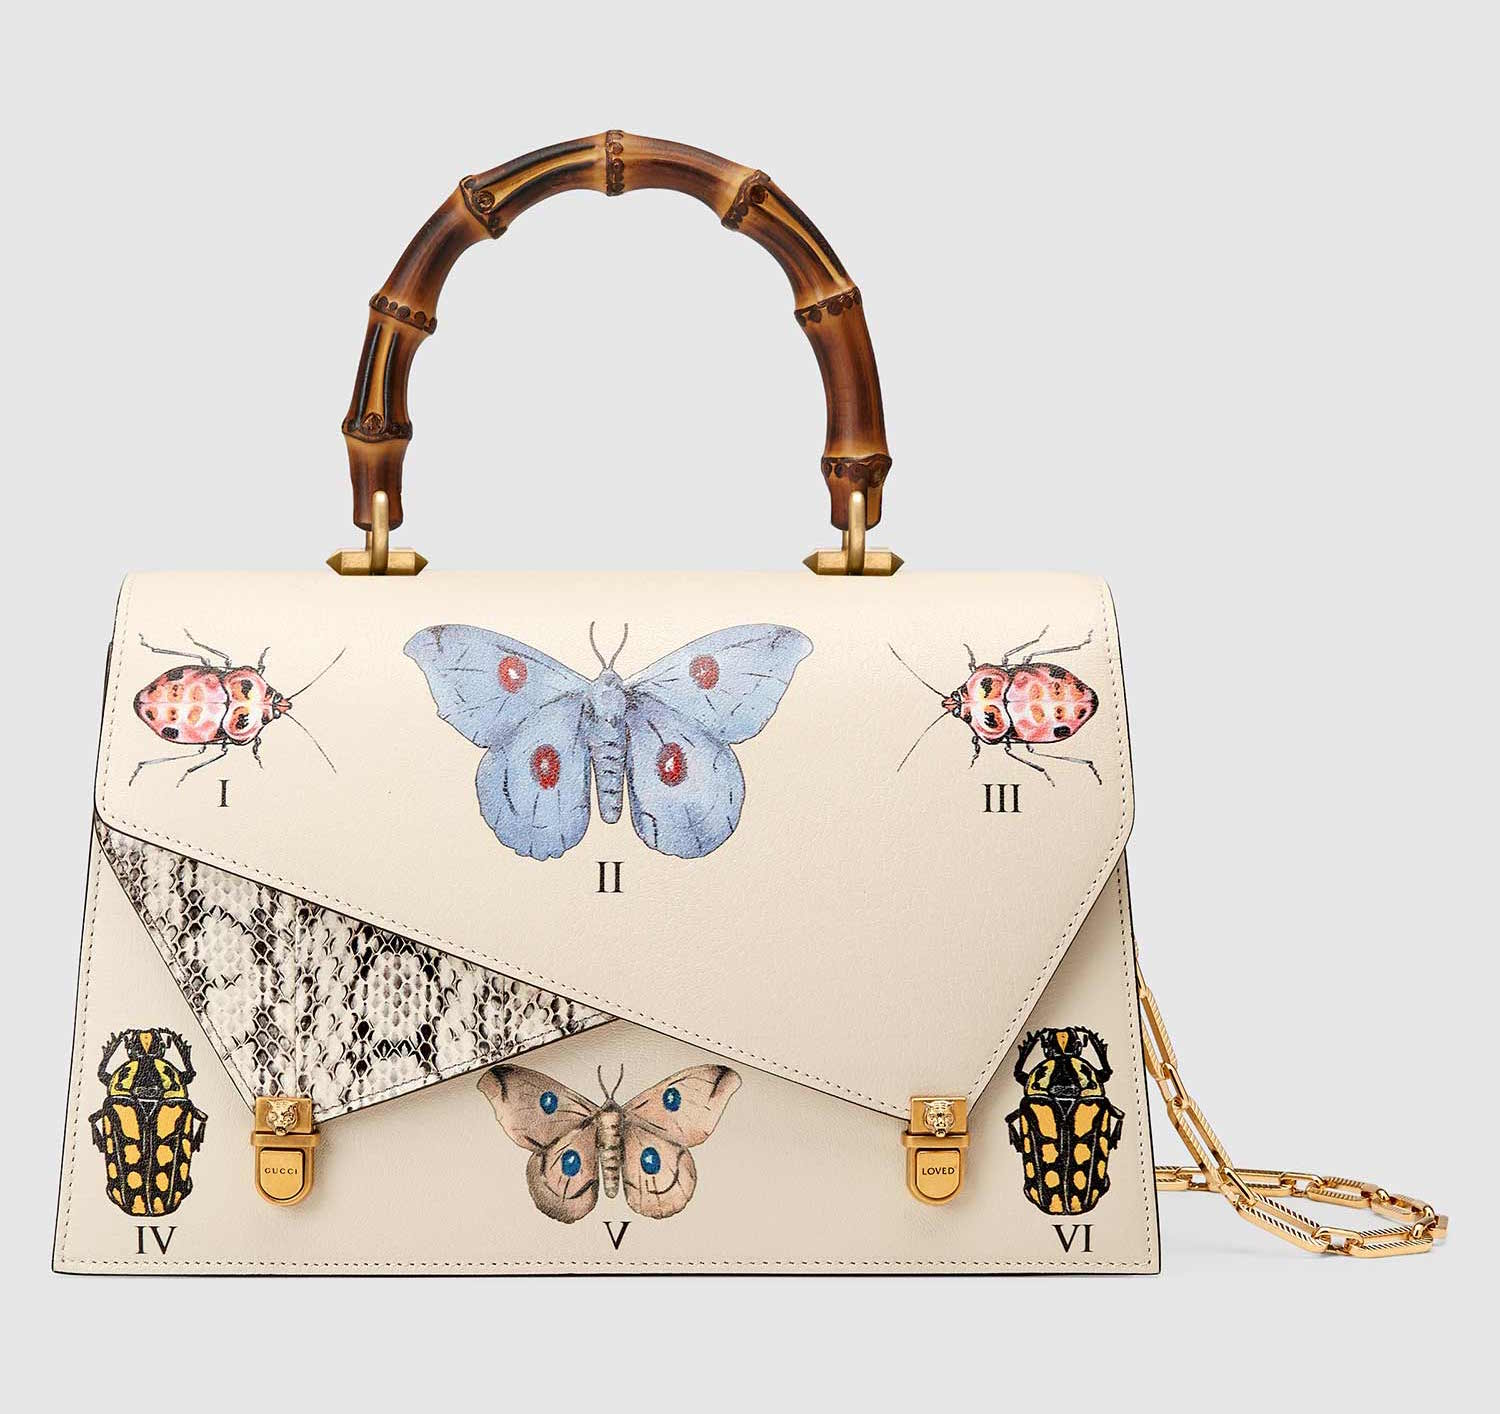 e38b9afb301a8 GUCCI OTTILIA WHITE LEATHER TOP HANDLE BAG